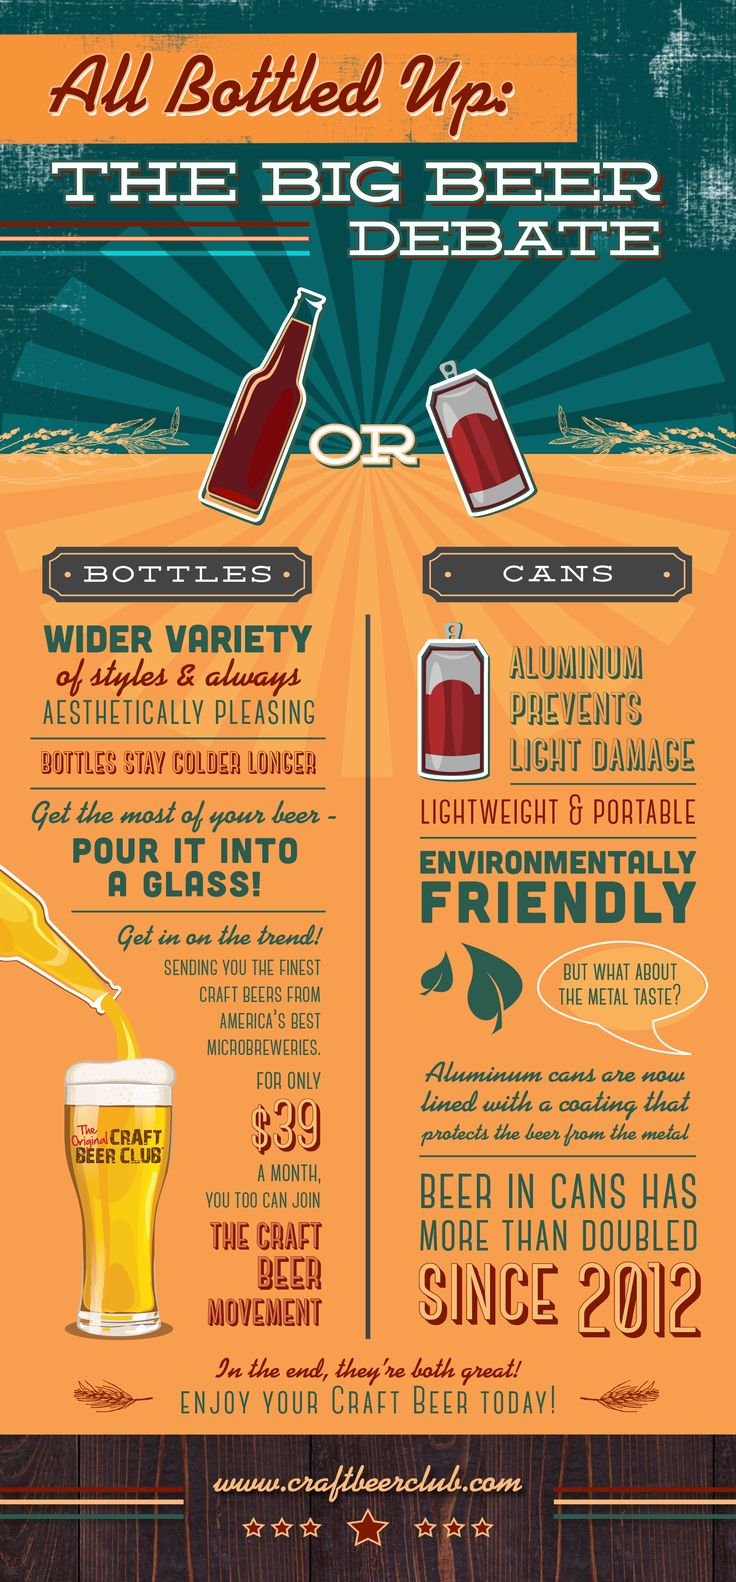 For $39, The Original Craft Beer Club does the hard work for you! Bringing you a 12 pack of craft beers from around the US - become a beer connoisseur from the comfort of your own couch! For $5 off a new ongoing order or a pre-paid membership of 3 shipments or more: https://craftbeerclub.com/beer-club/craft-beer?_filter:PackageNumber=insta5